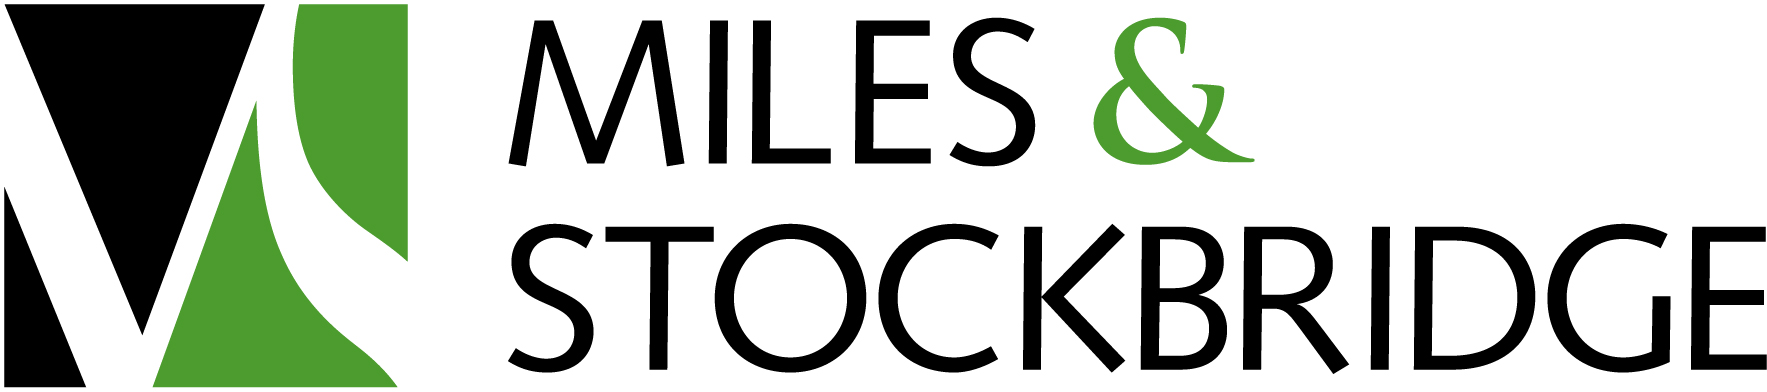 M&S-logo-black_text-web.jpg